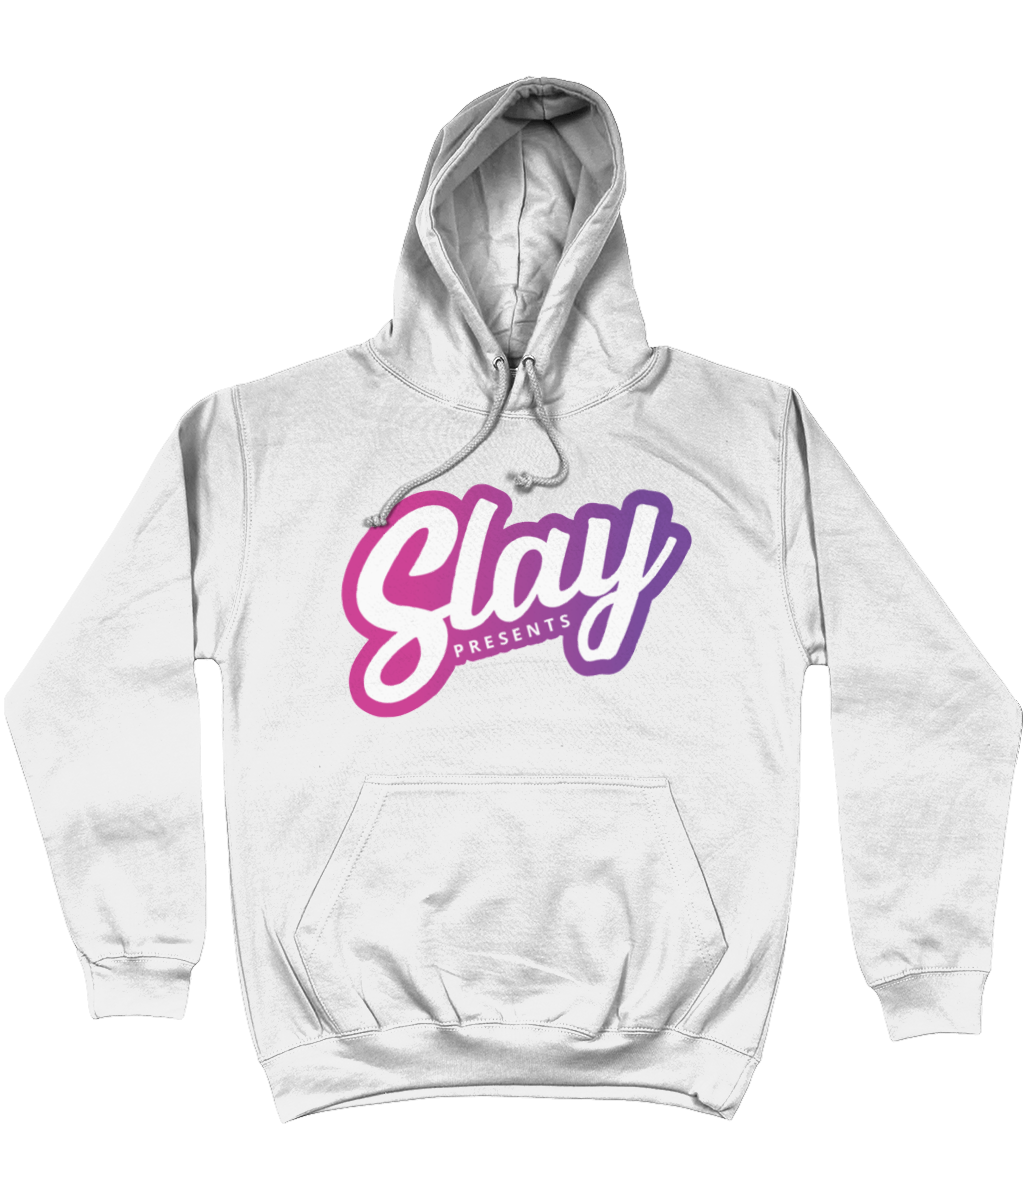 Slay! Presents Hoodie - SNATCHED